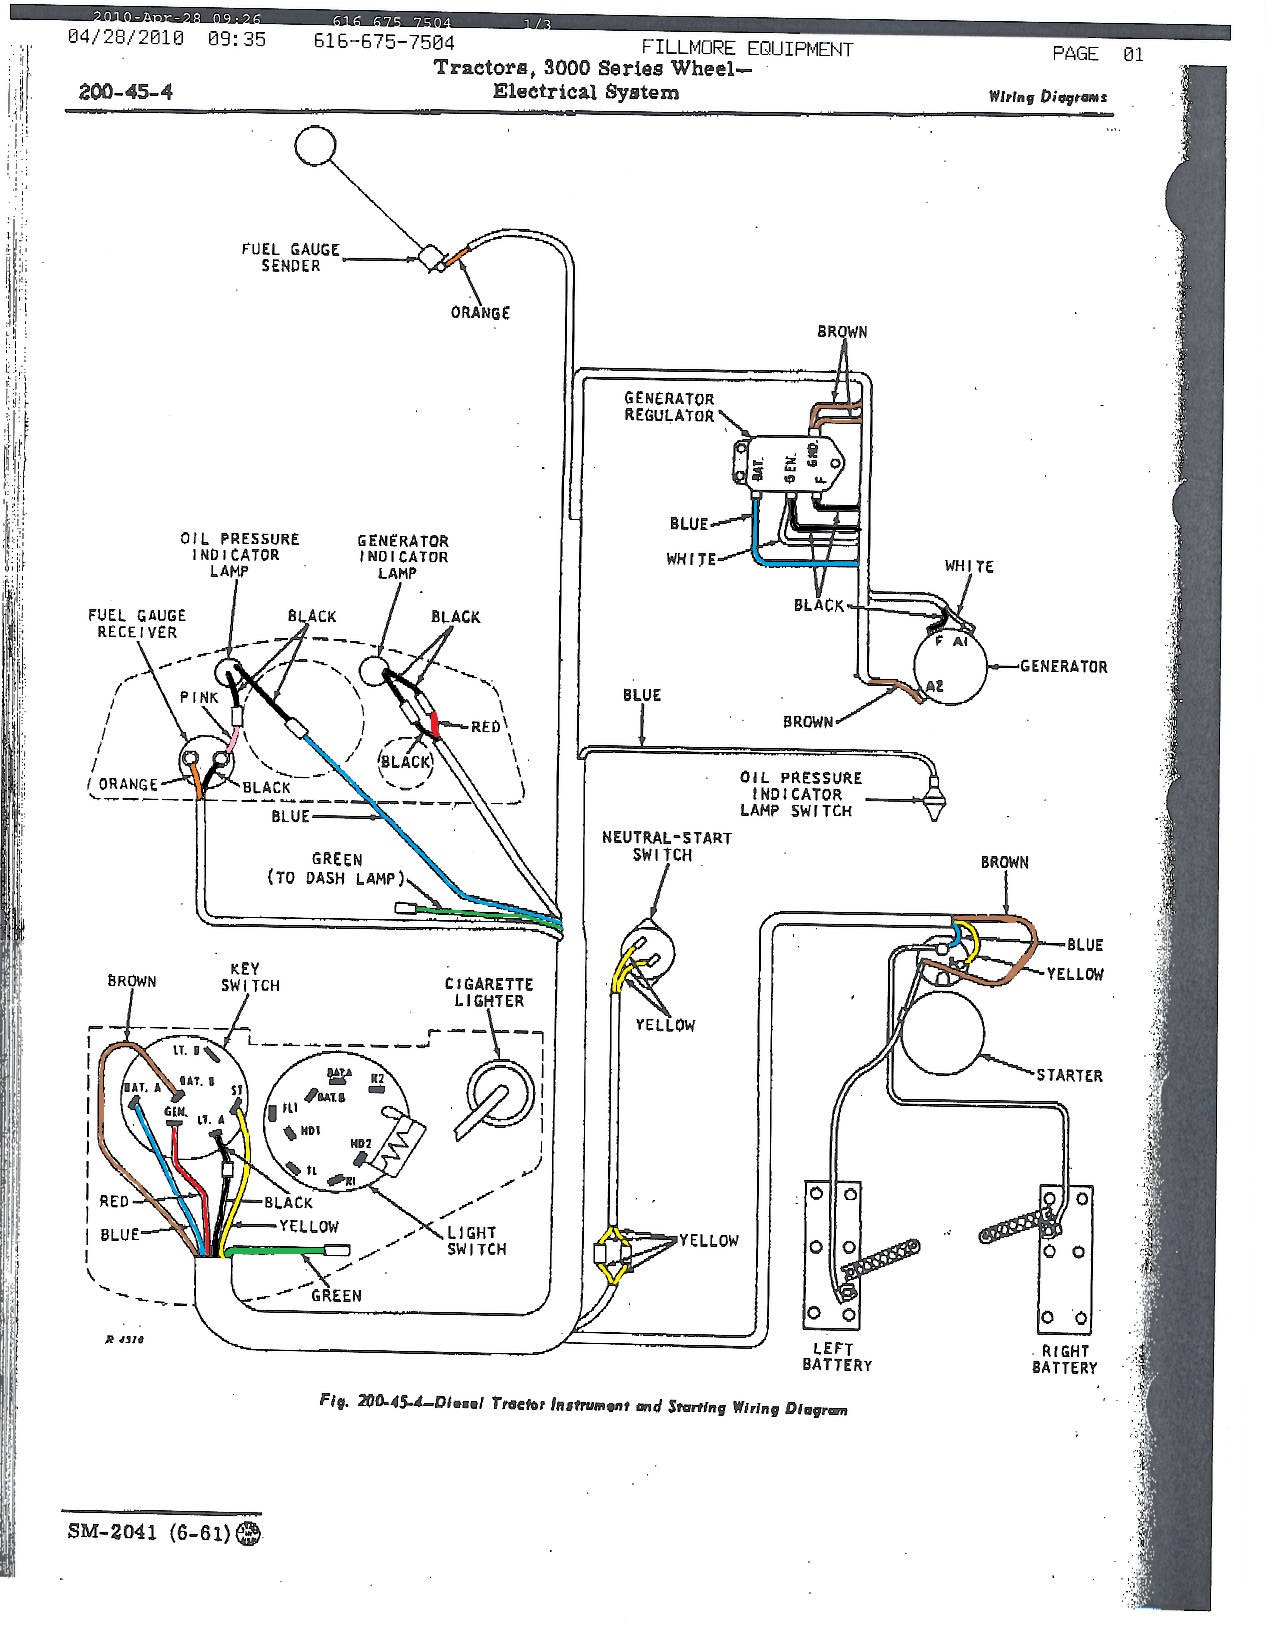 John Deere Fuel Diagram